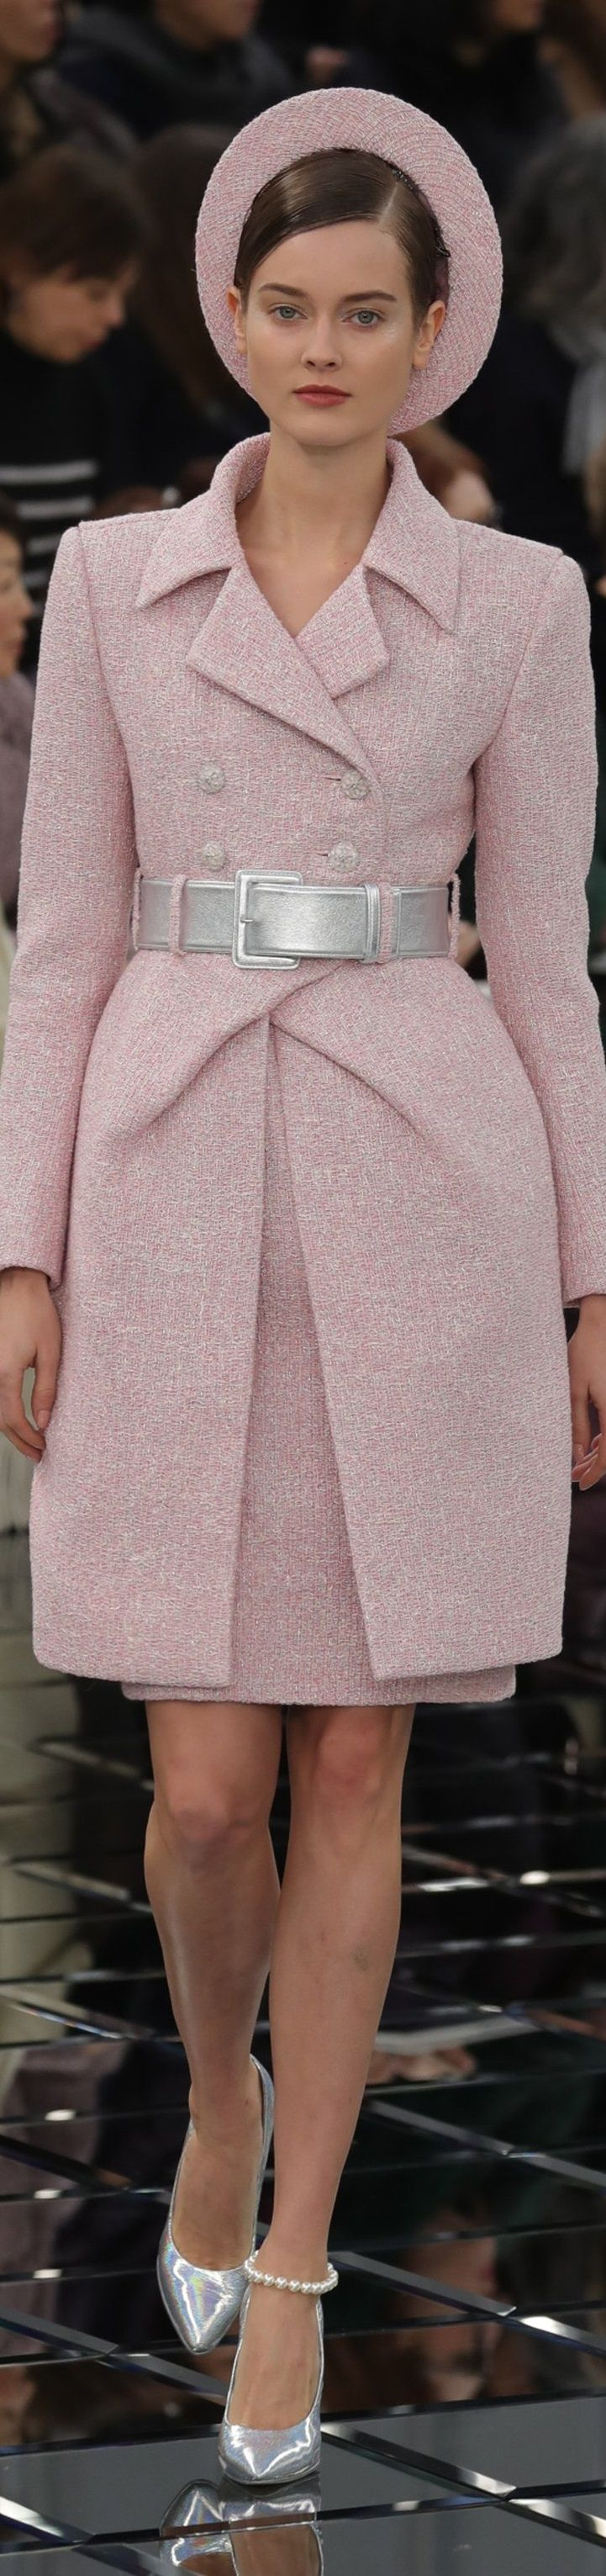 Chanel S-17 Couture: pink tweed crossed coat.